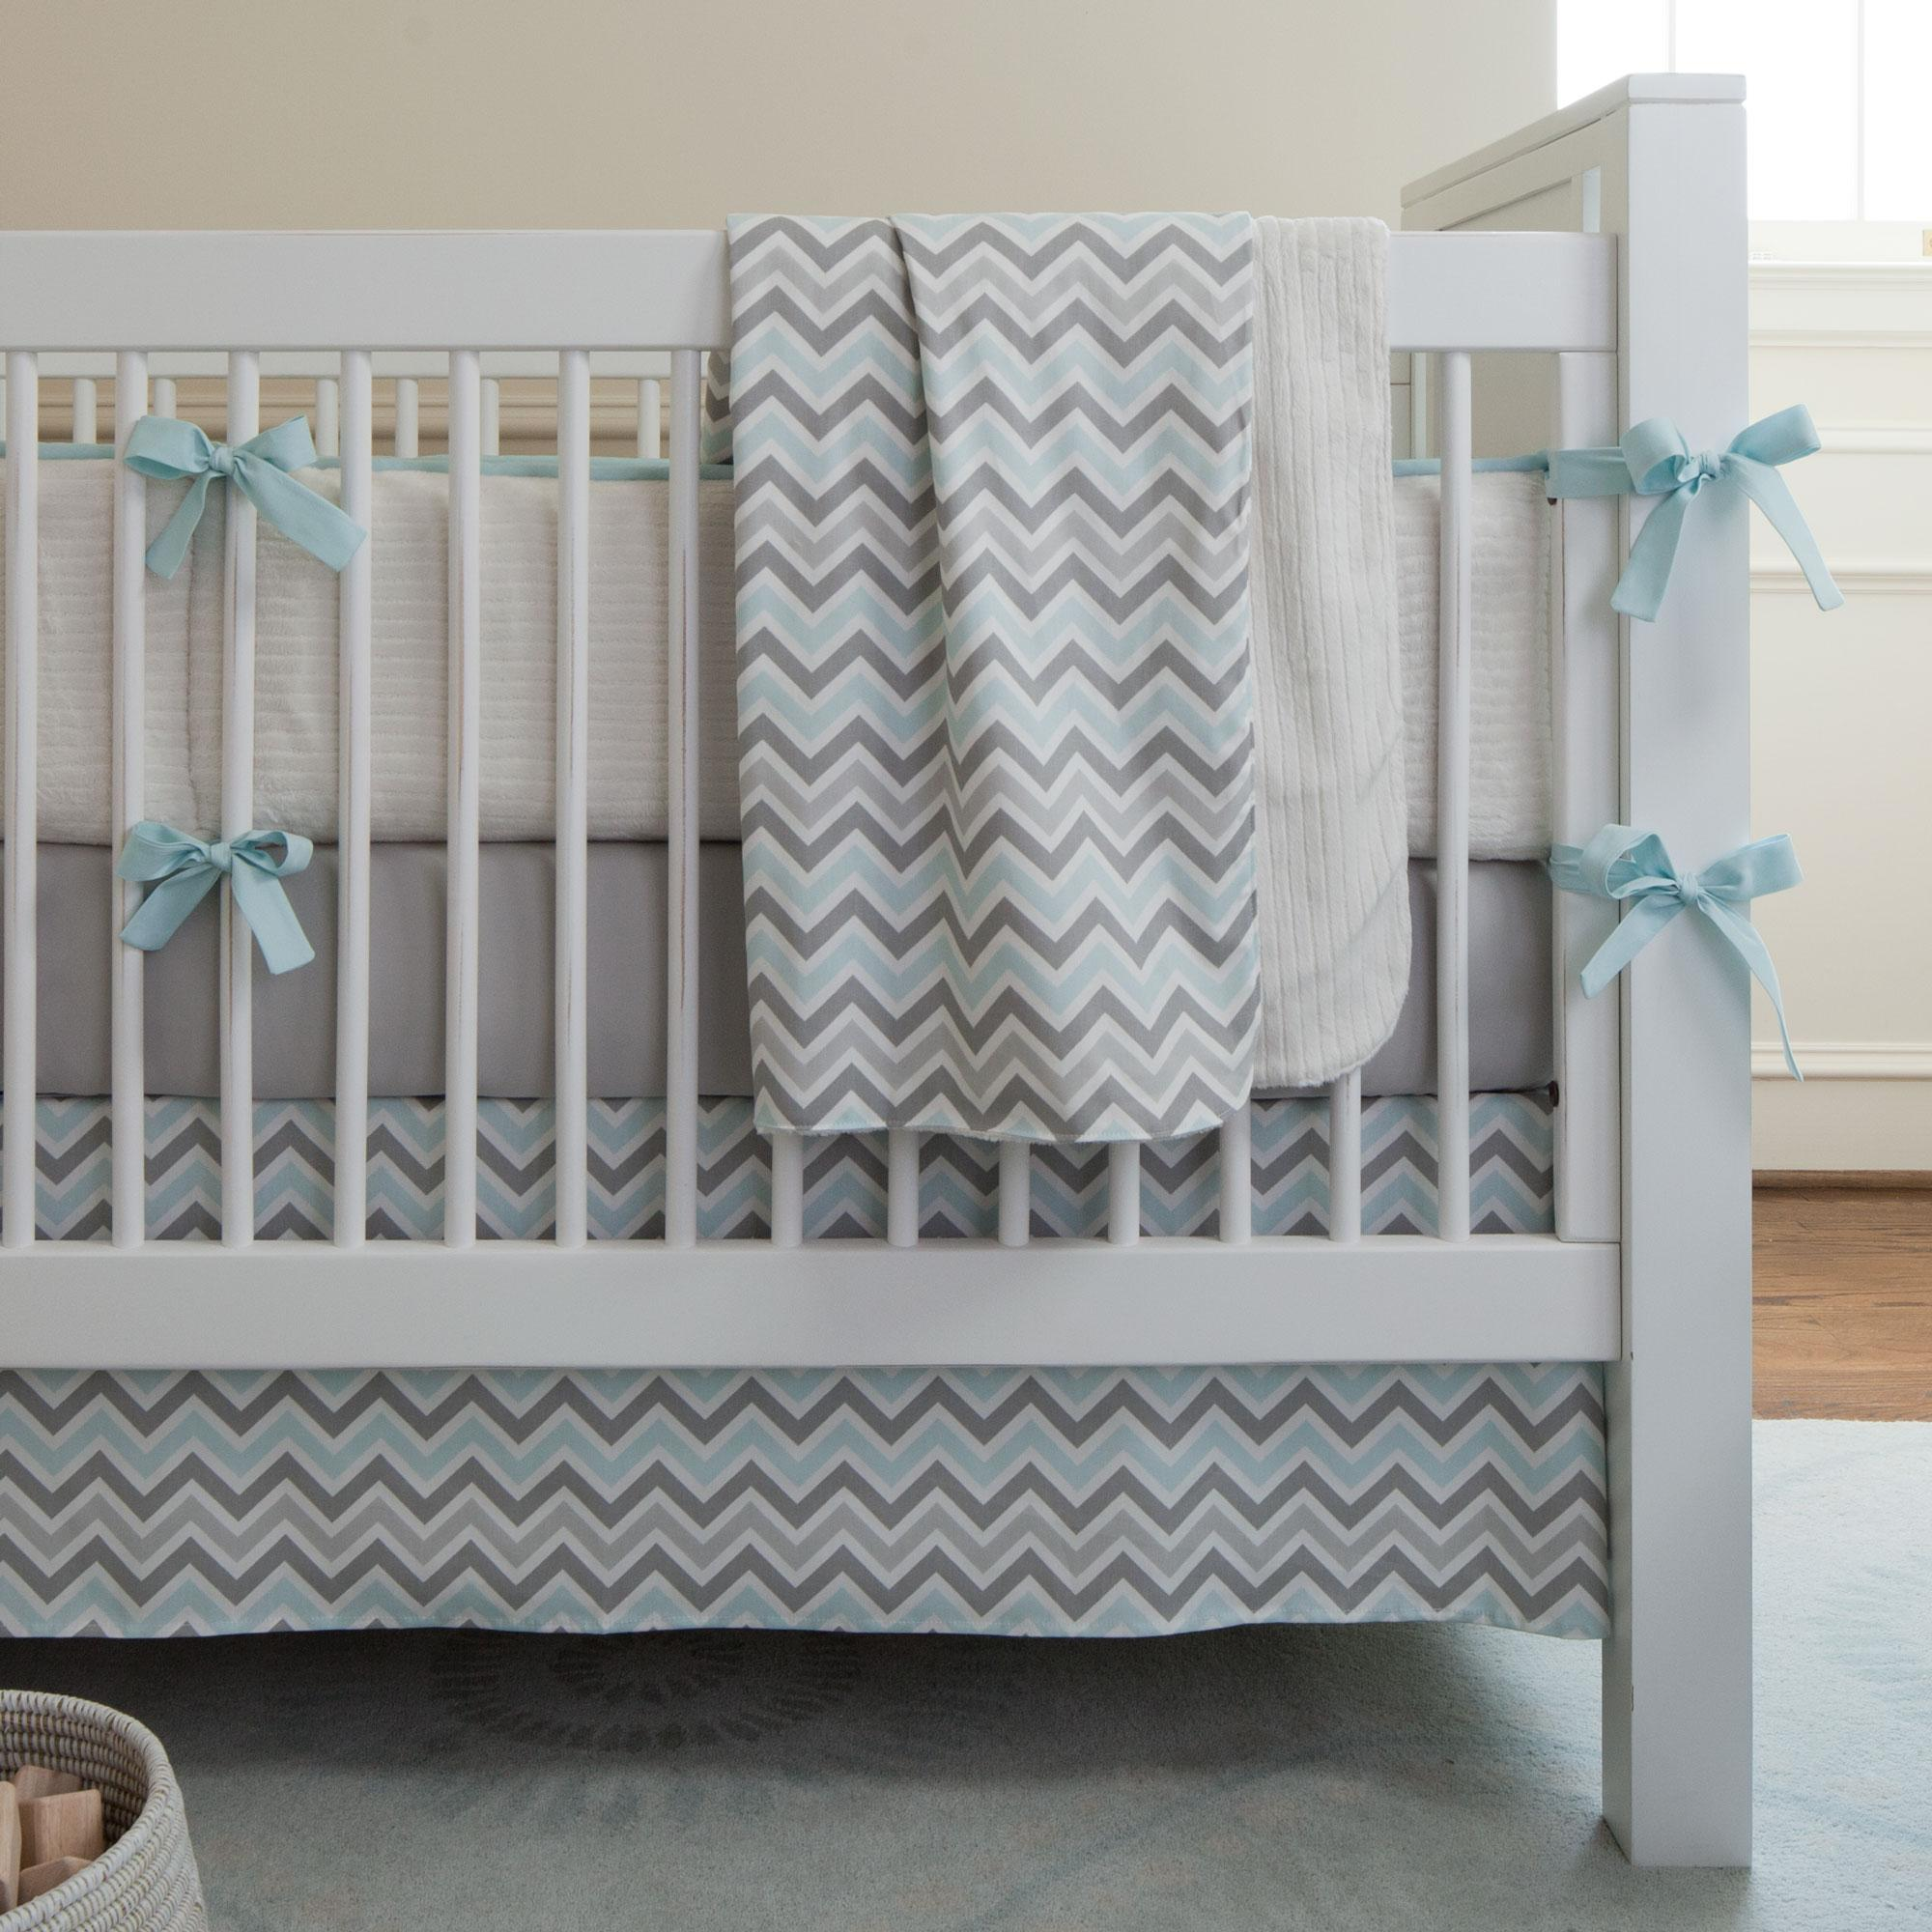 boys for set cri crib ideas coat sets cot over white concern bumpers dable target grey cribs pads breathable burling girl bedding rail sids pad and baby there bumper much newborn